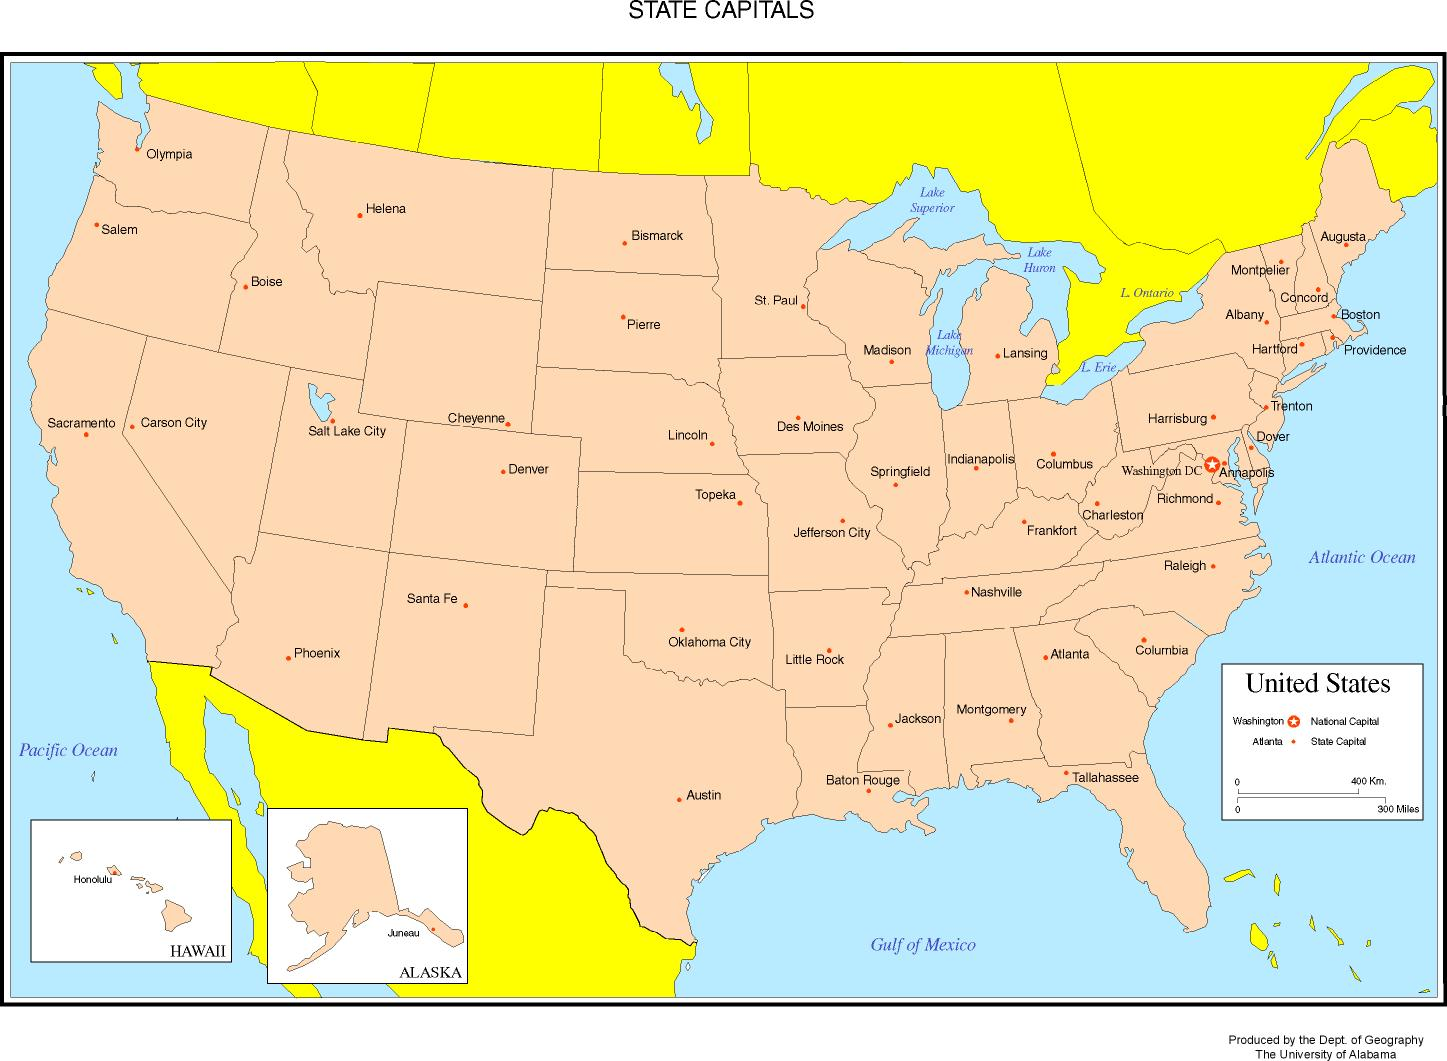 Of Us States And Capitals Printable Maps Of The United States - Usa states list and map